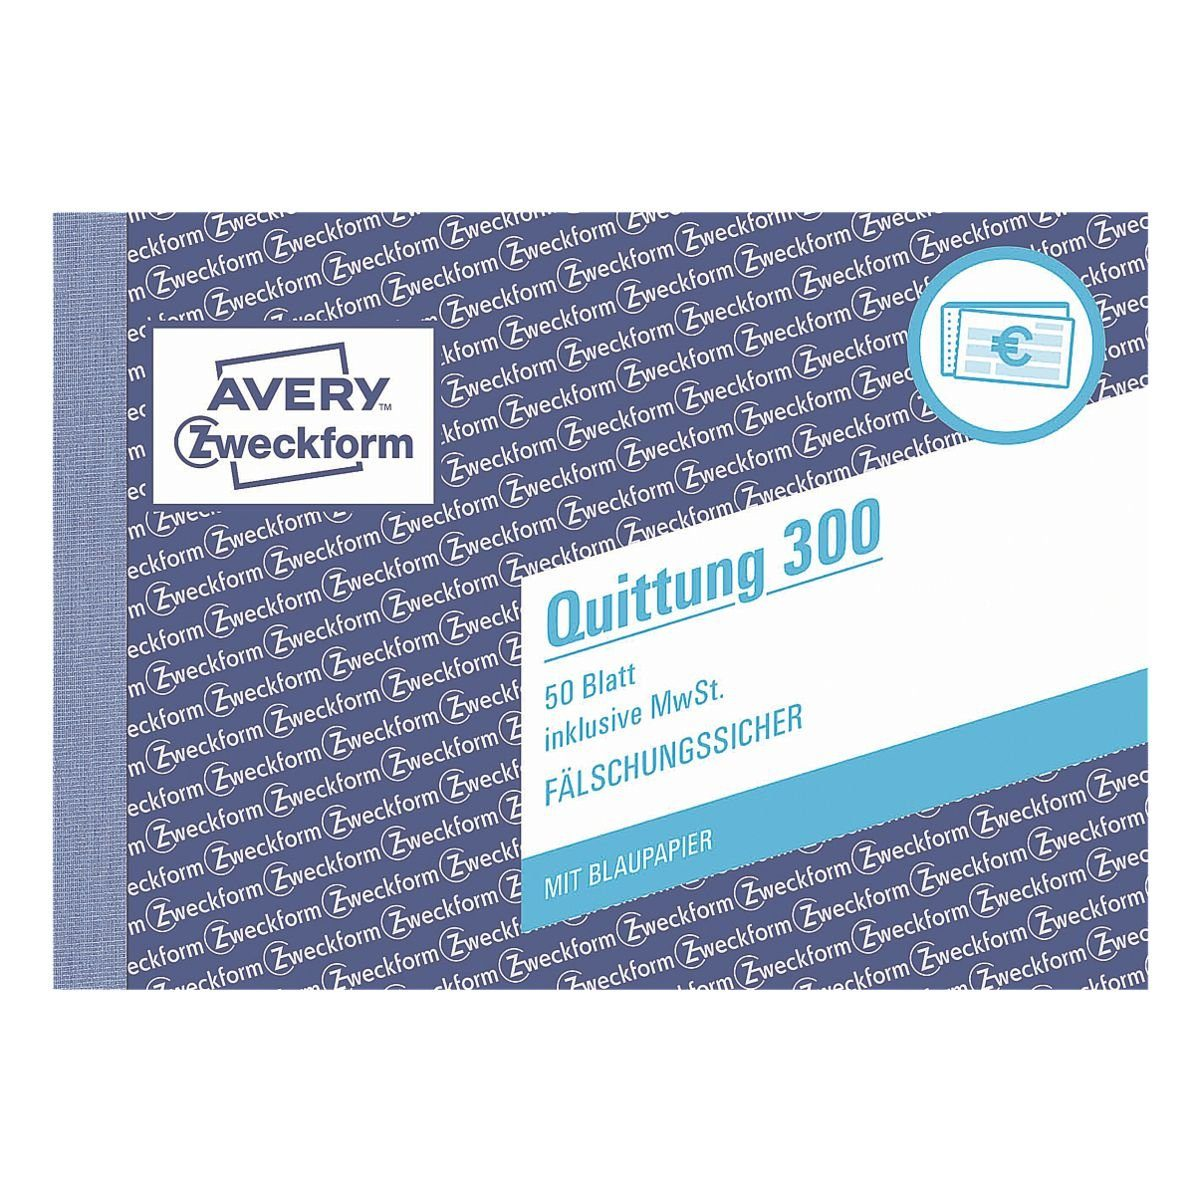 Avery Zweckform Formularbuch »Quittung inkl. MwSt.«